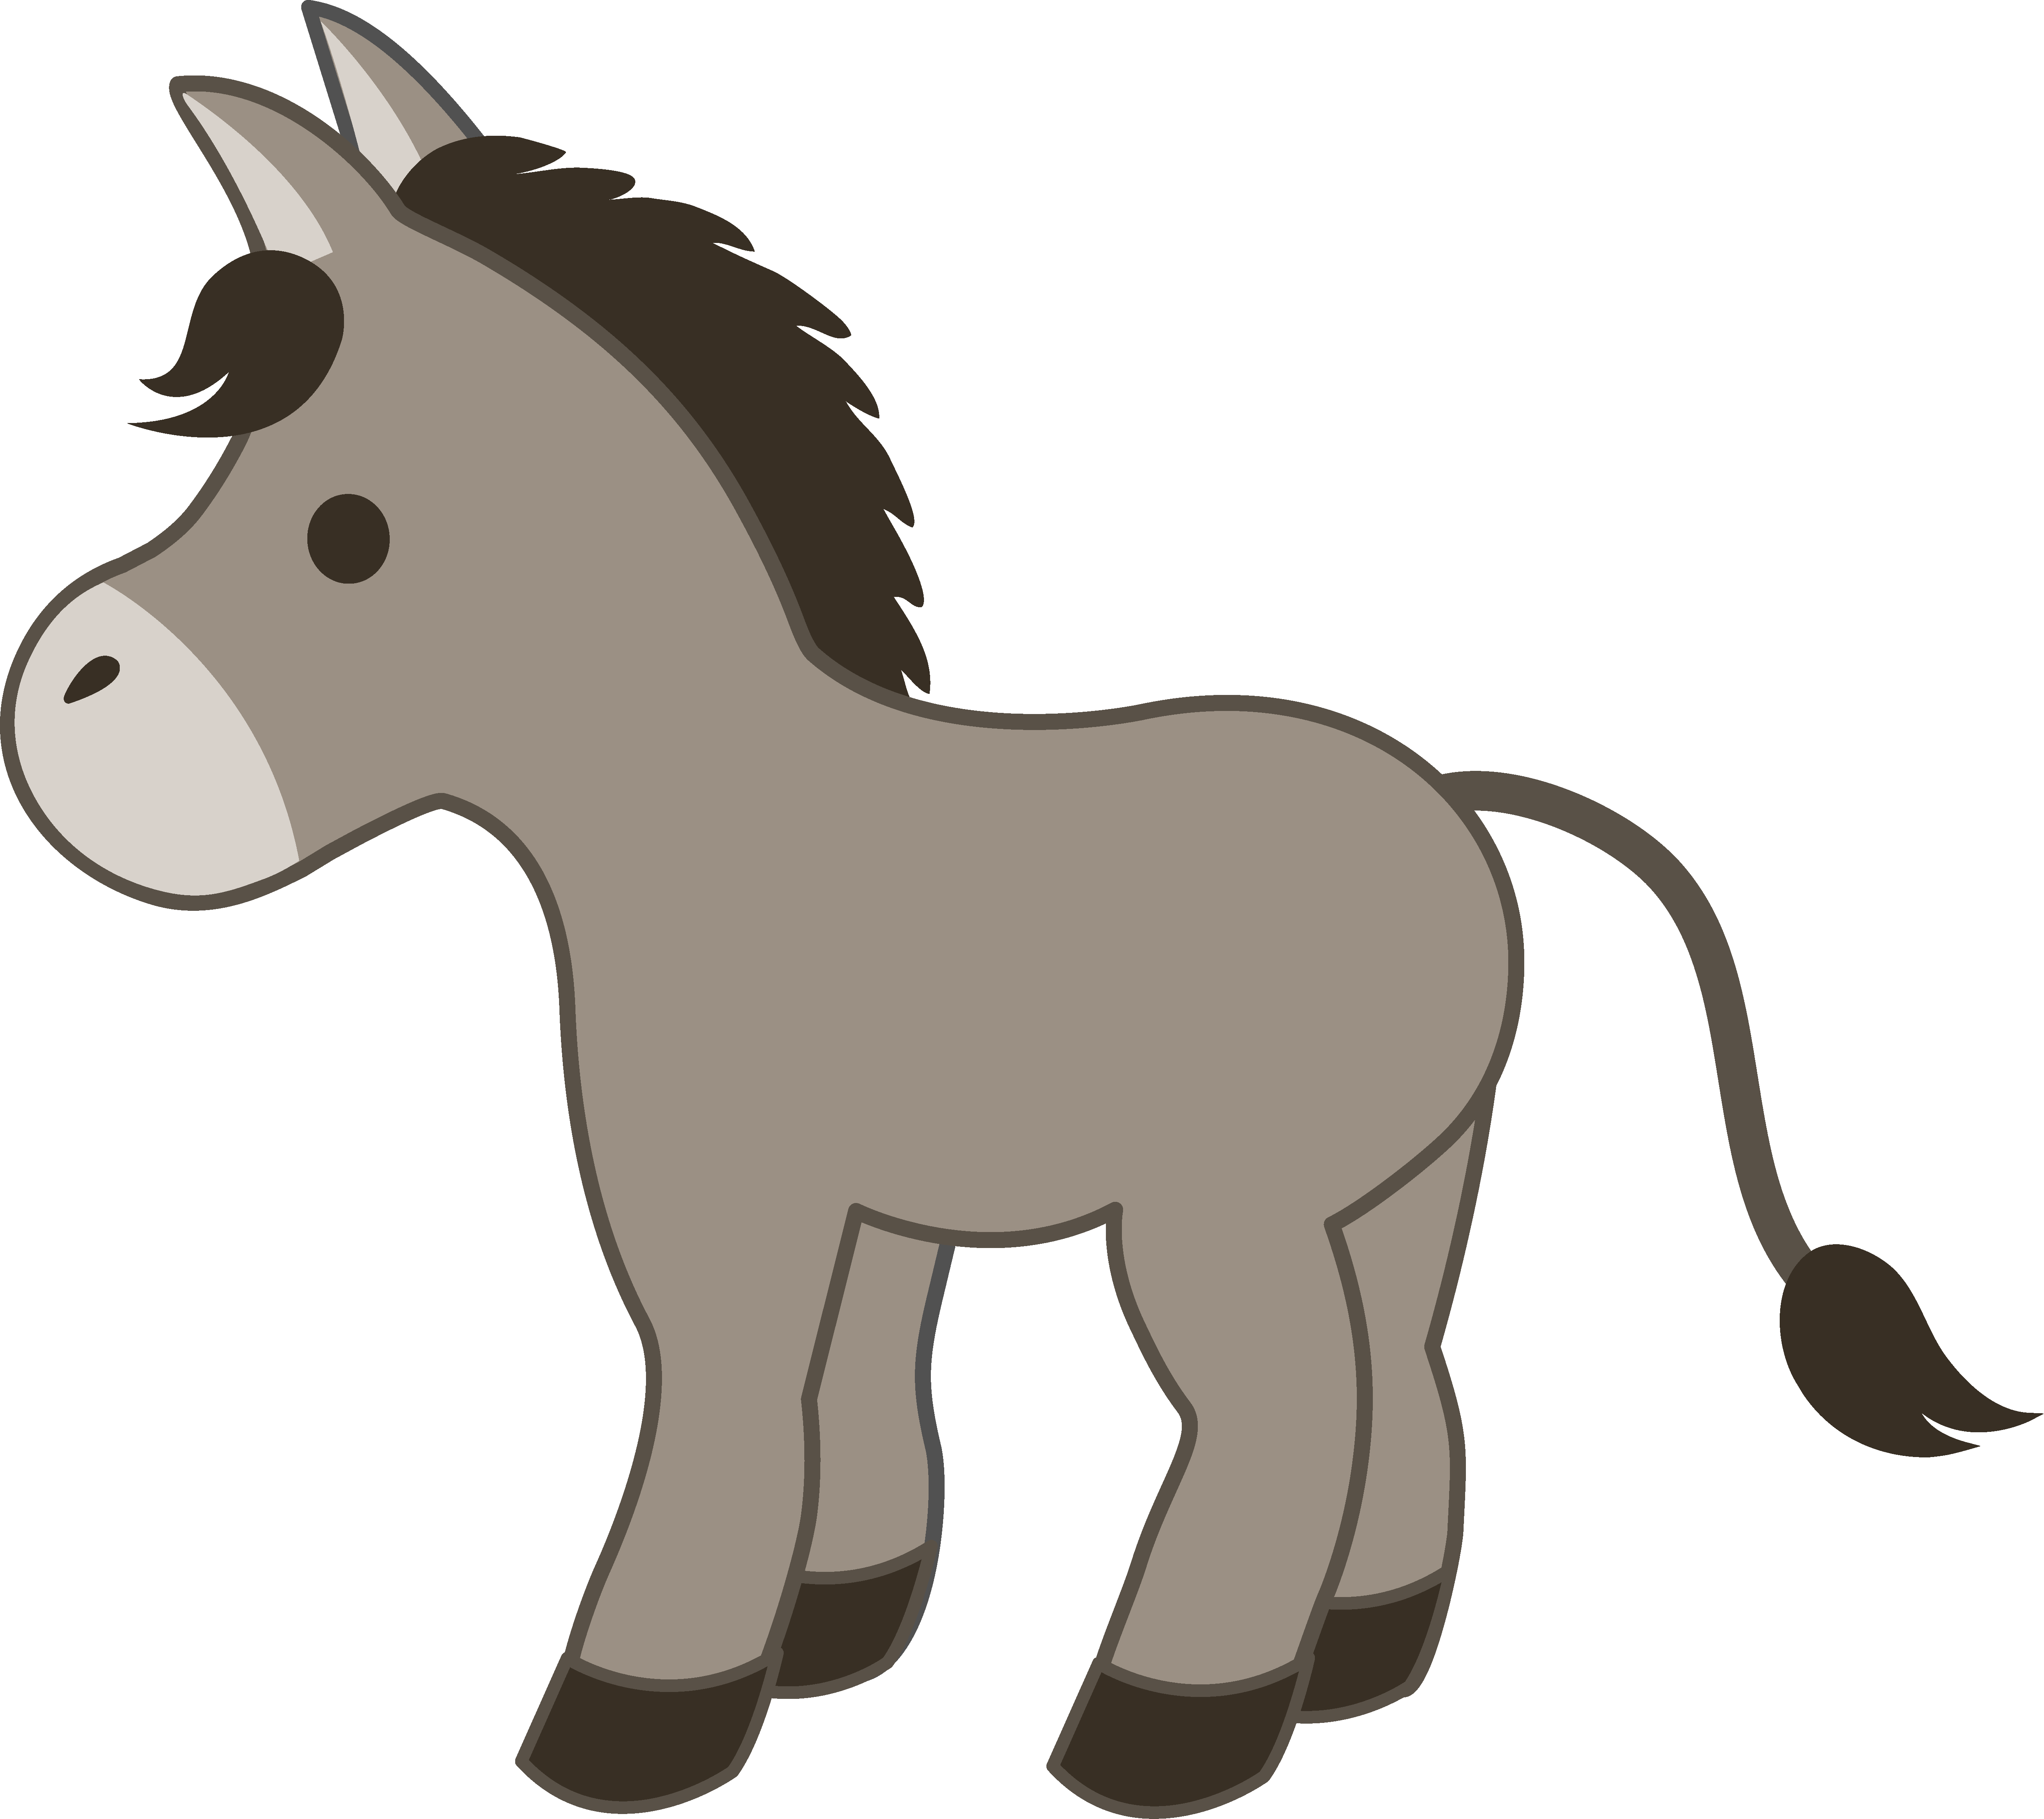 5360x4769 Donkey Is A Fictional Talking Donkey Created By William Steig